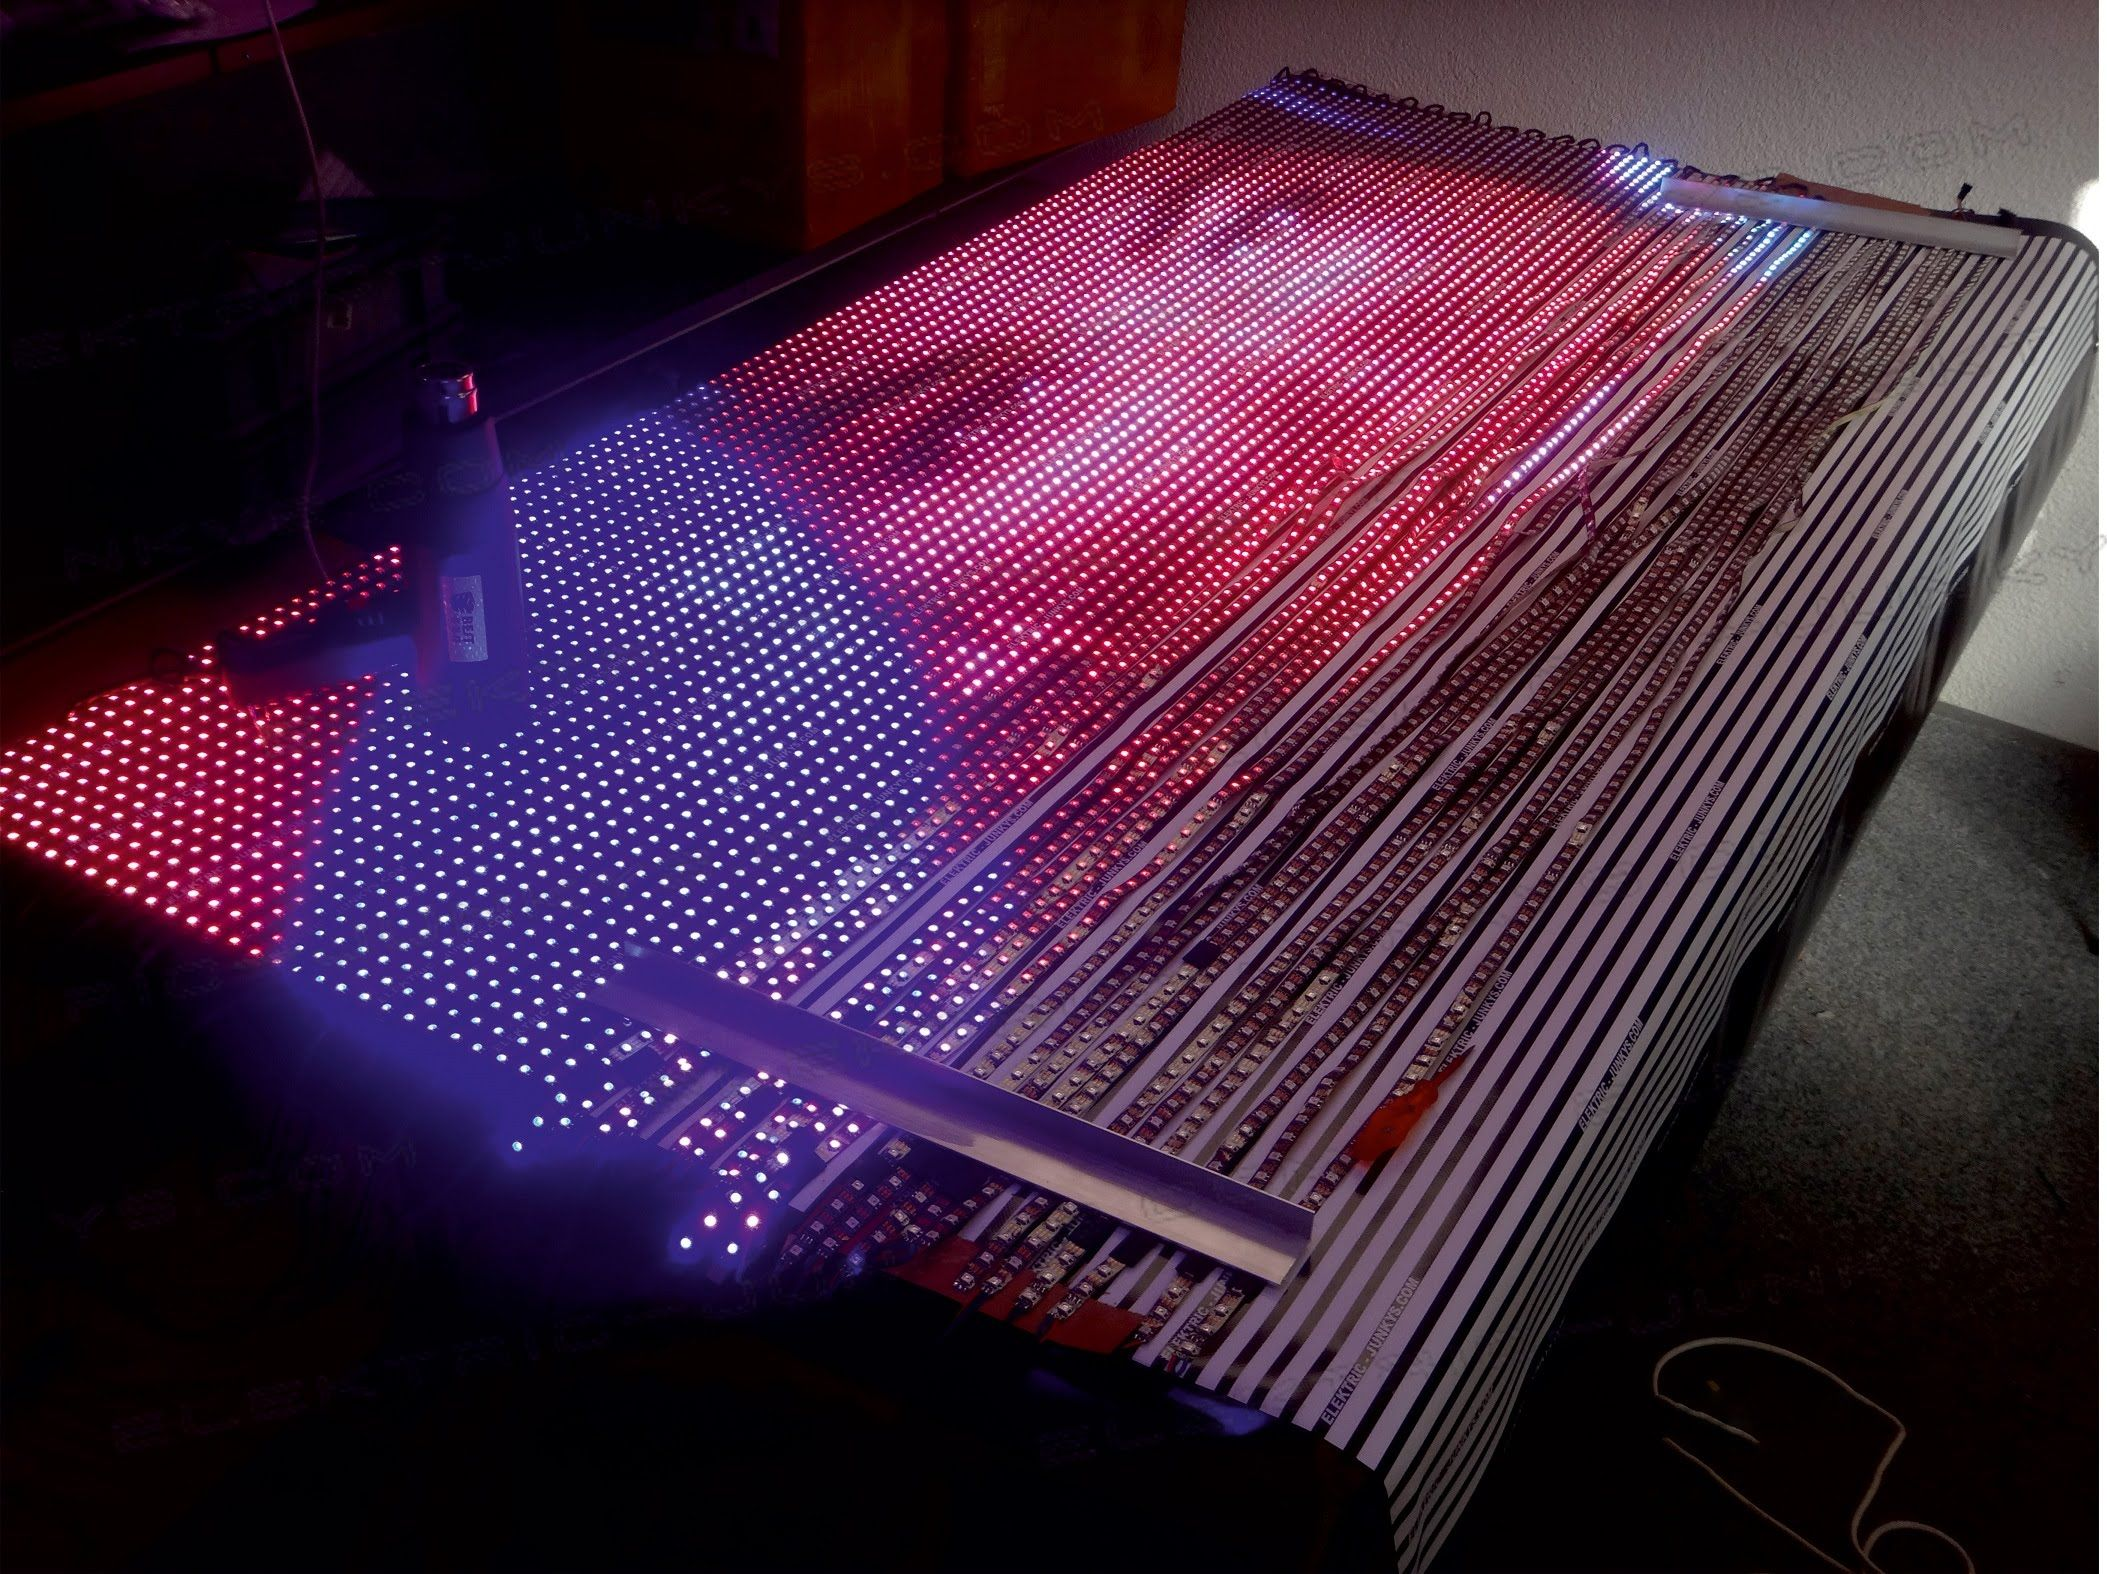 Neo pixel infinity mirror enviral design - Checkout Our Amazing Led Diy How To Build Your Own Led Display By Led Strips Soften